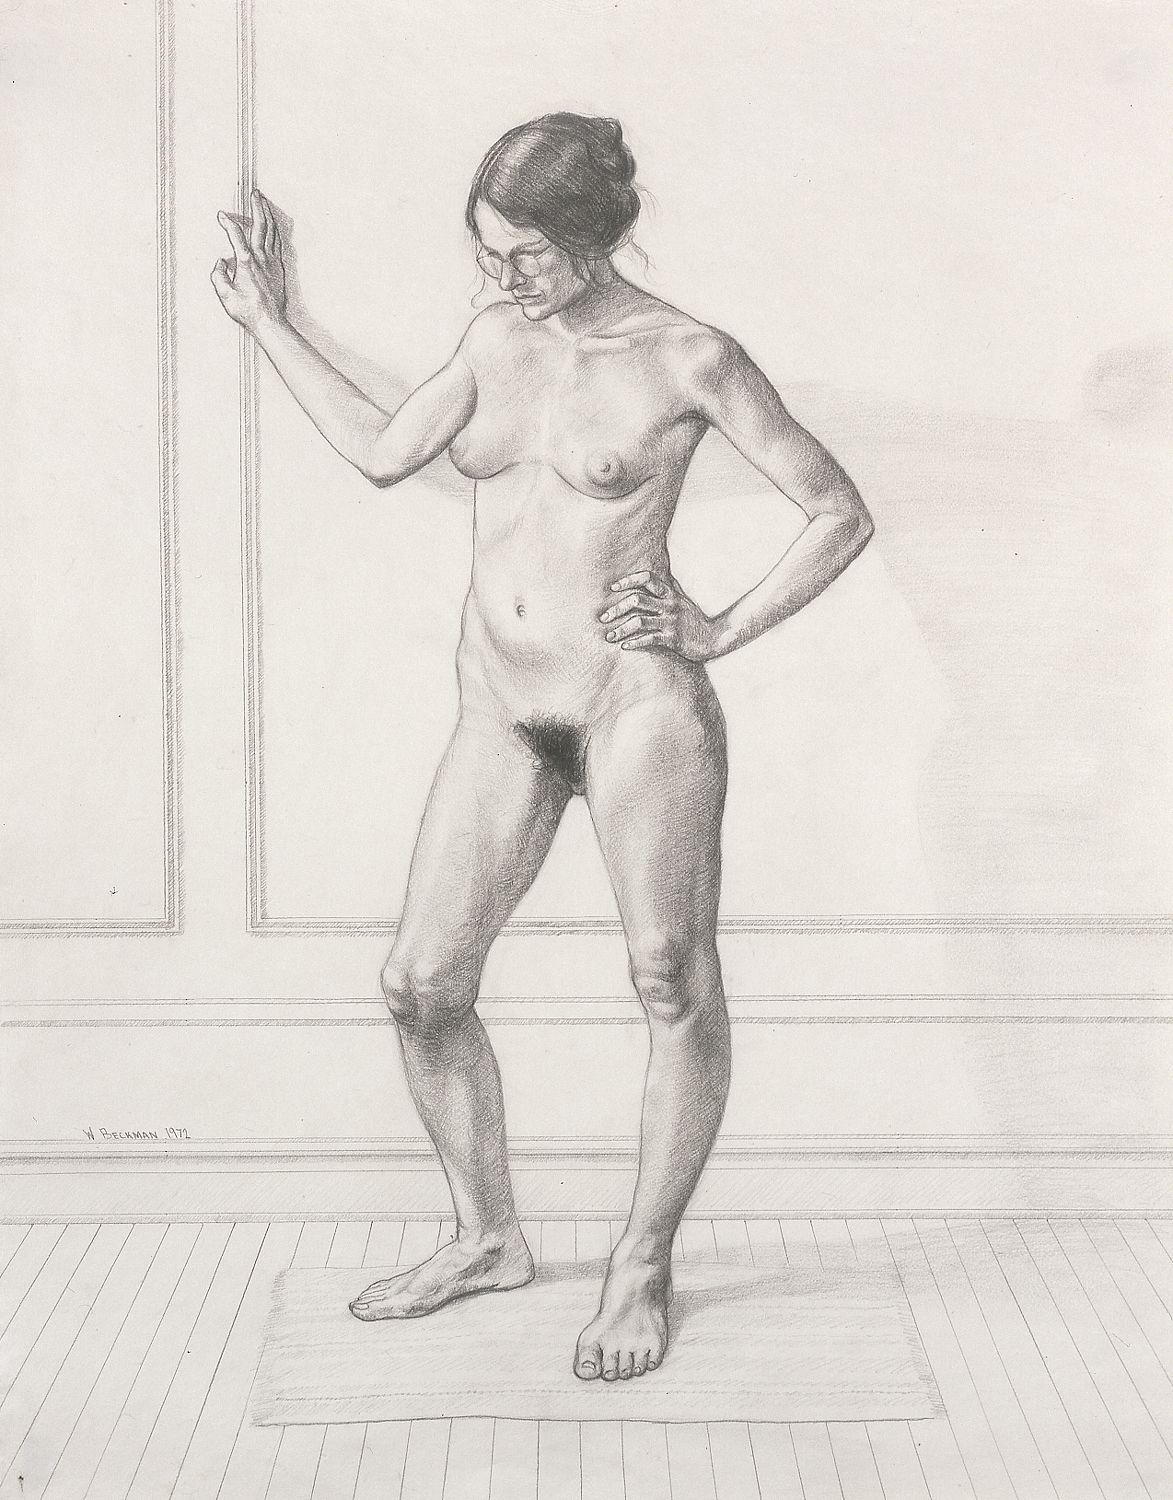 """William Beckman, Study for """"Diana #1"""", facing left, 1972, pencil on paper, 22 3/4 x 18 inches"""